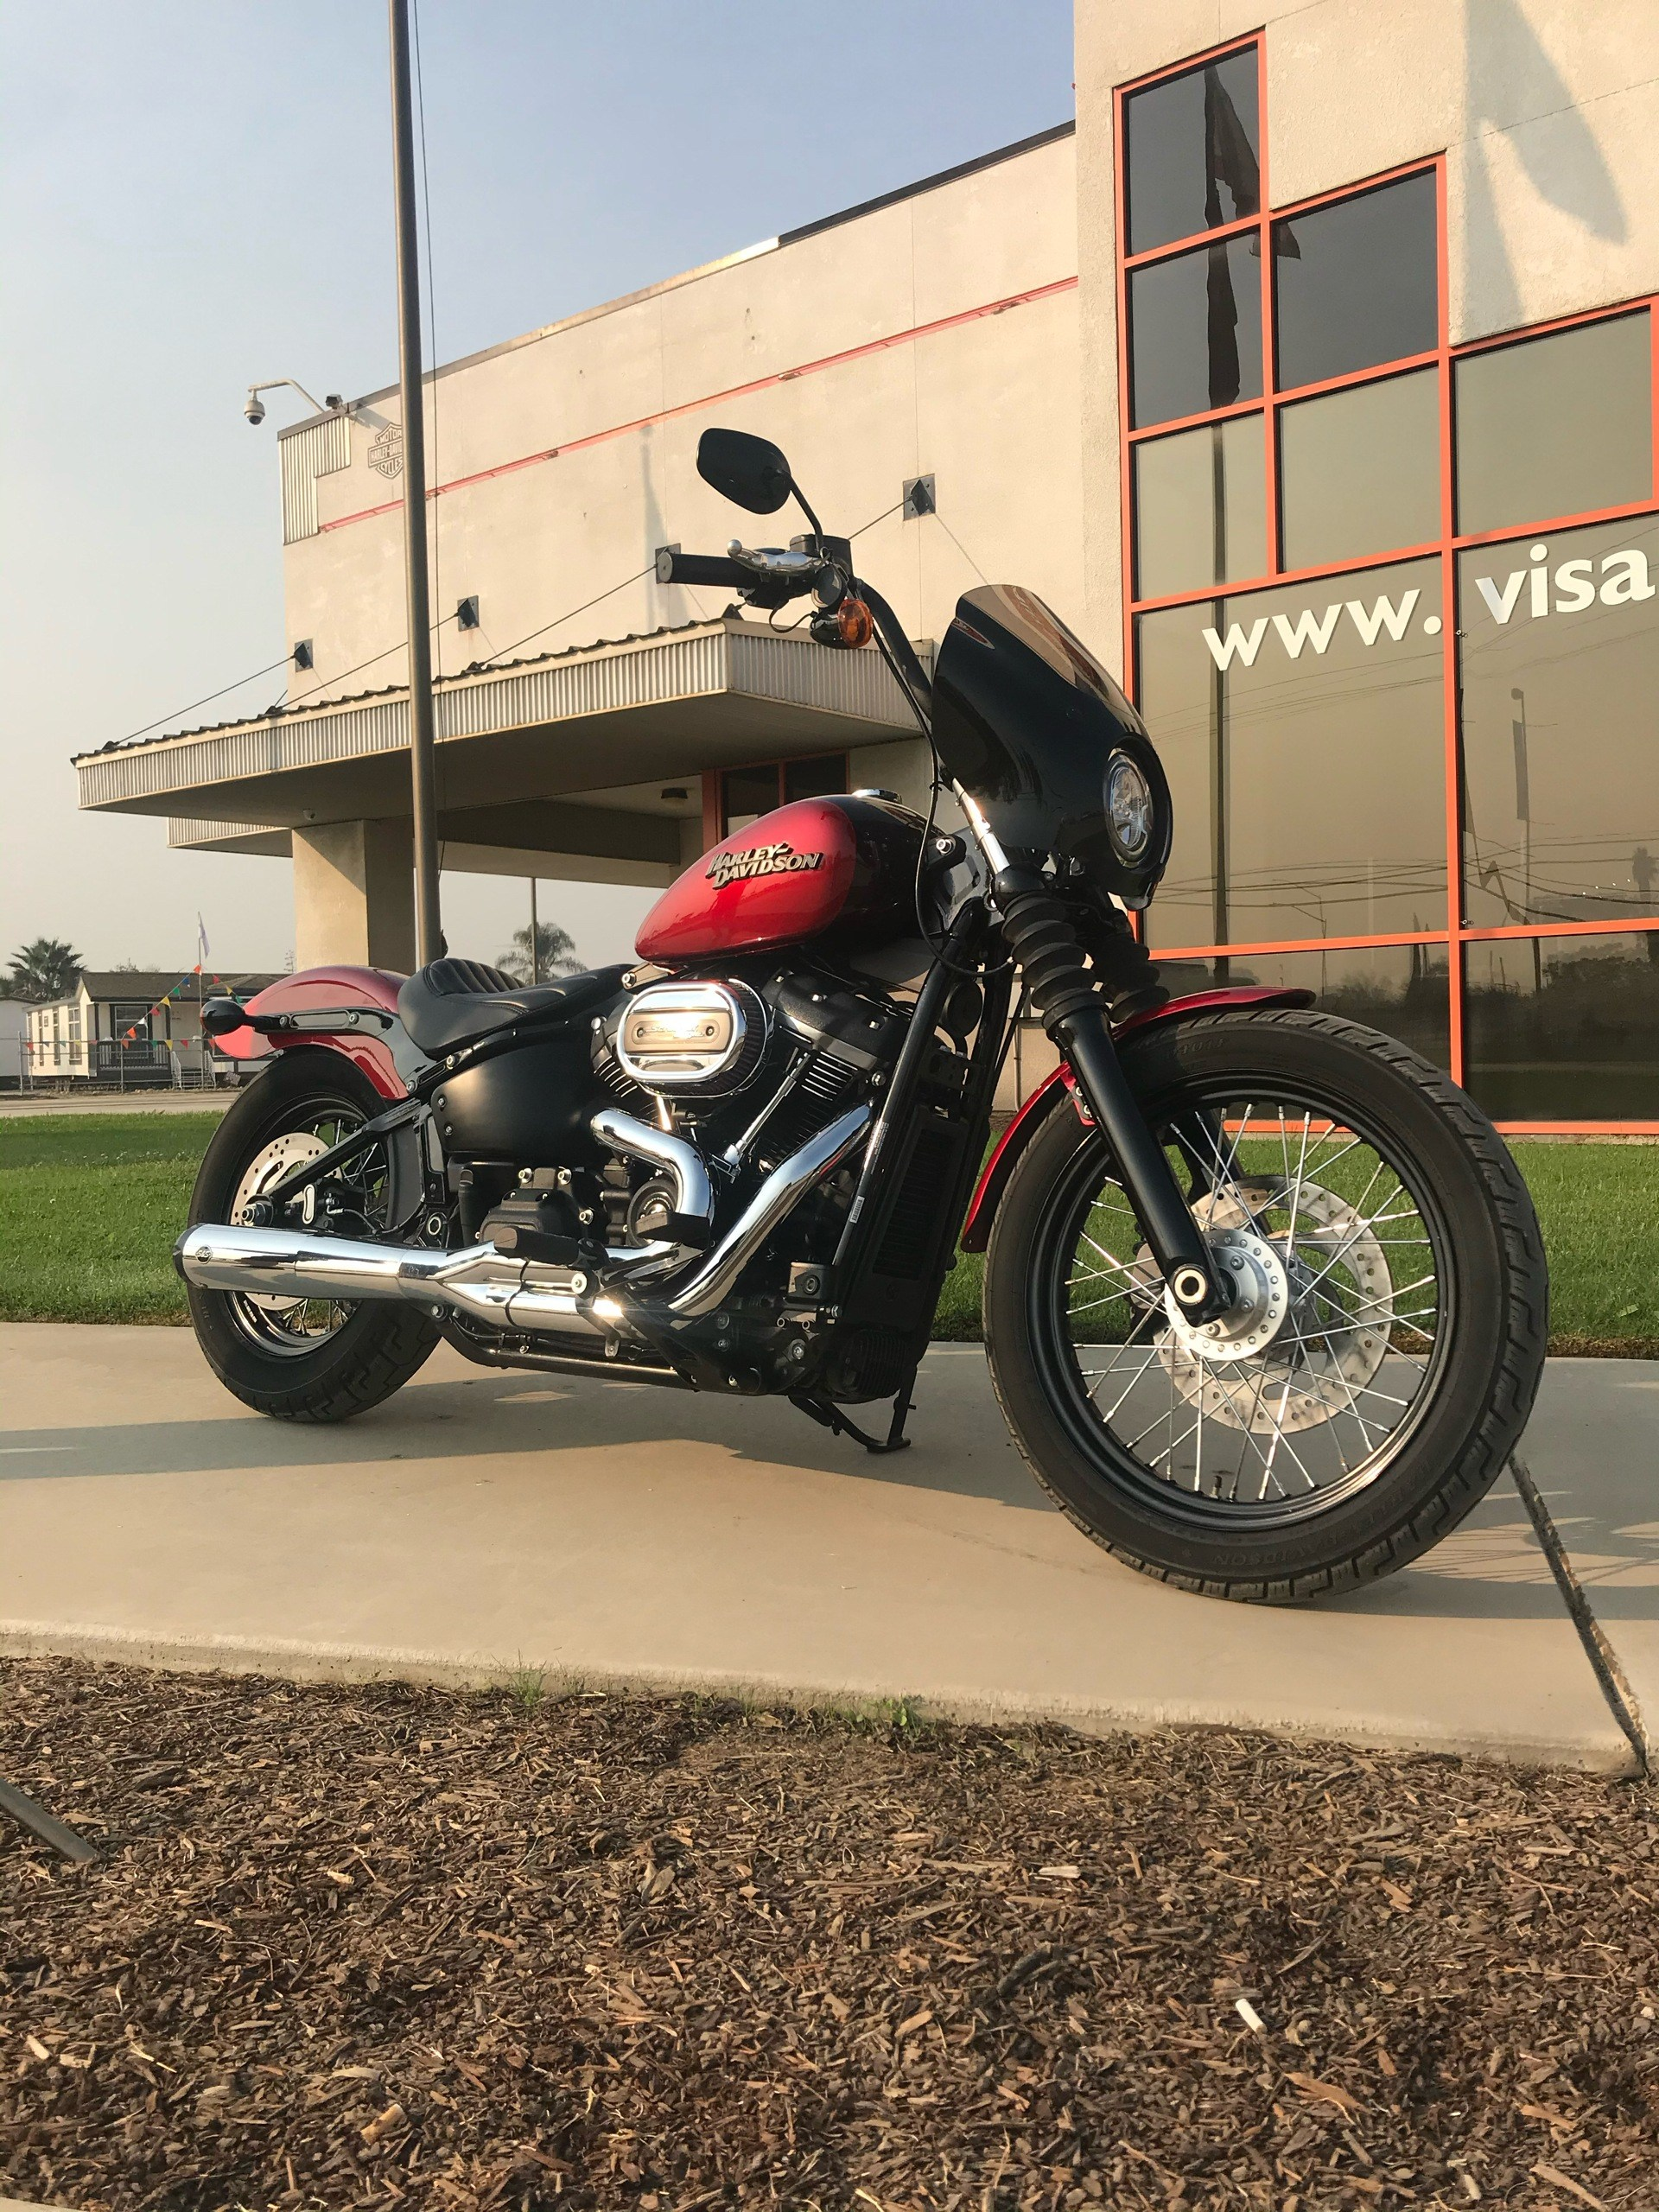 2019 Harley-Davidson Street Bob® in Visalia, California - Photo 2